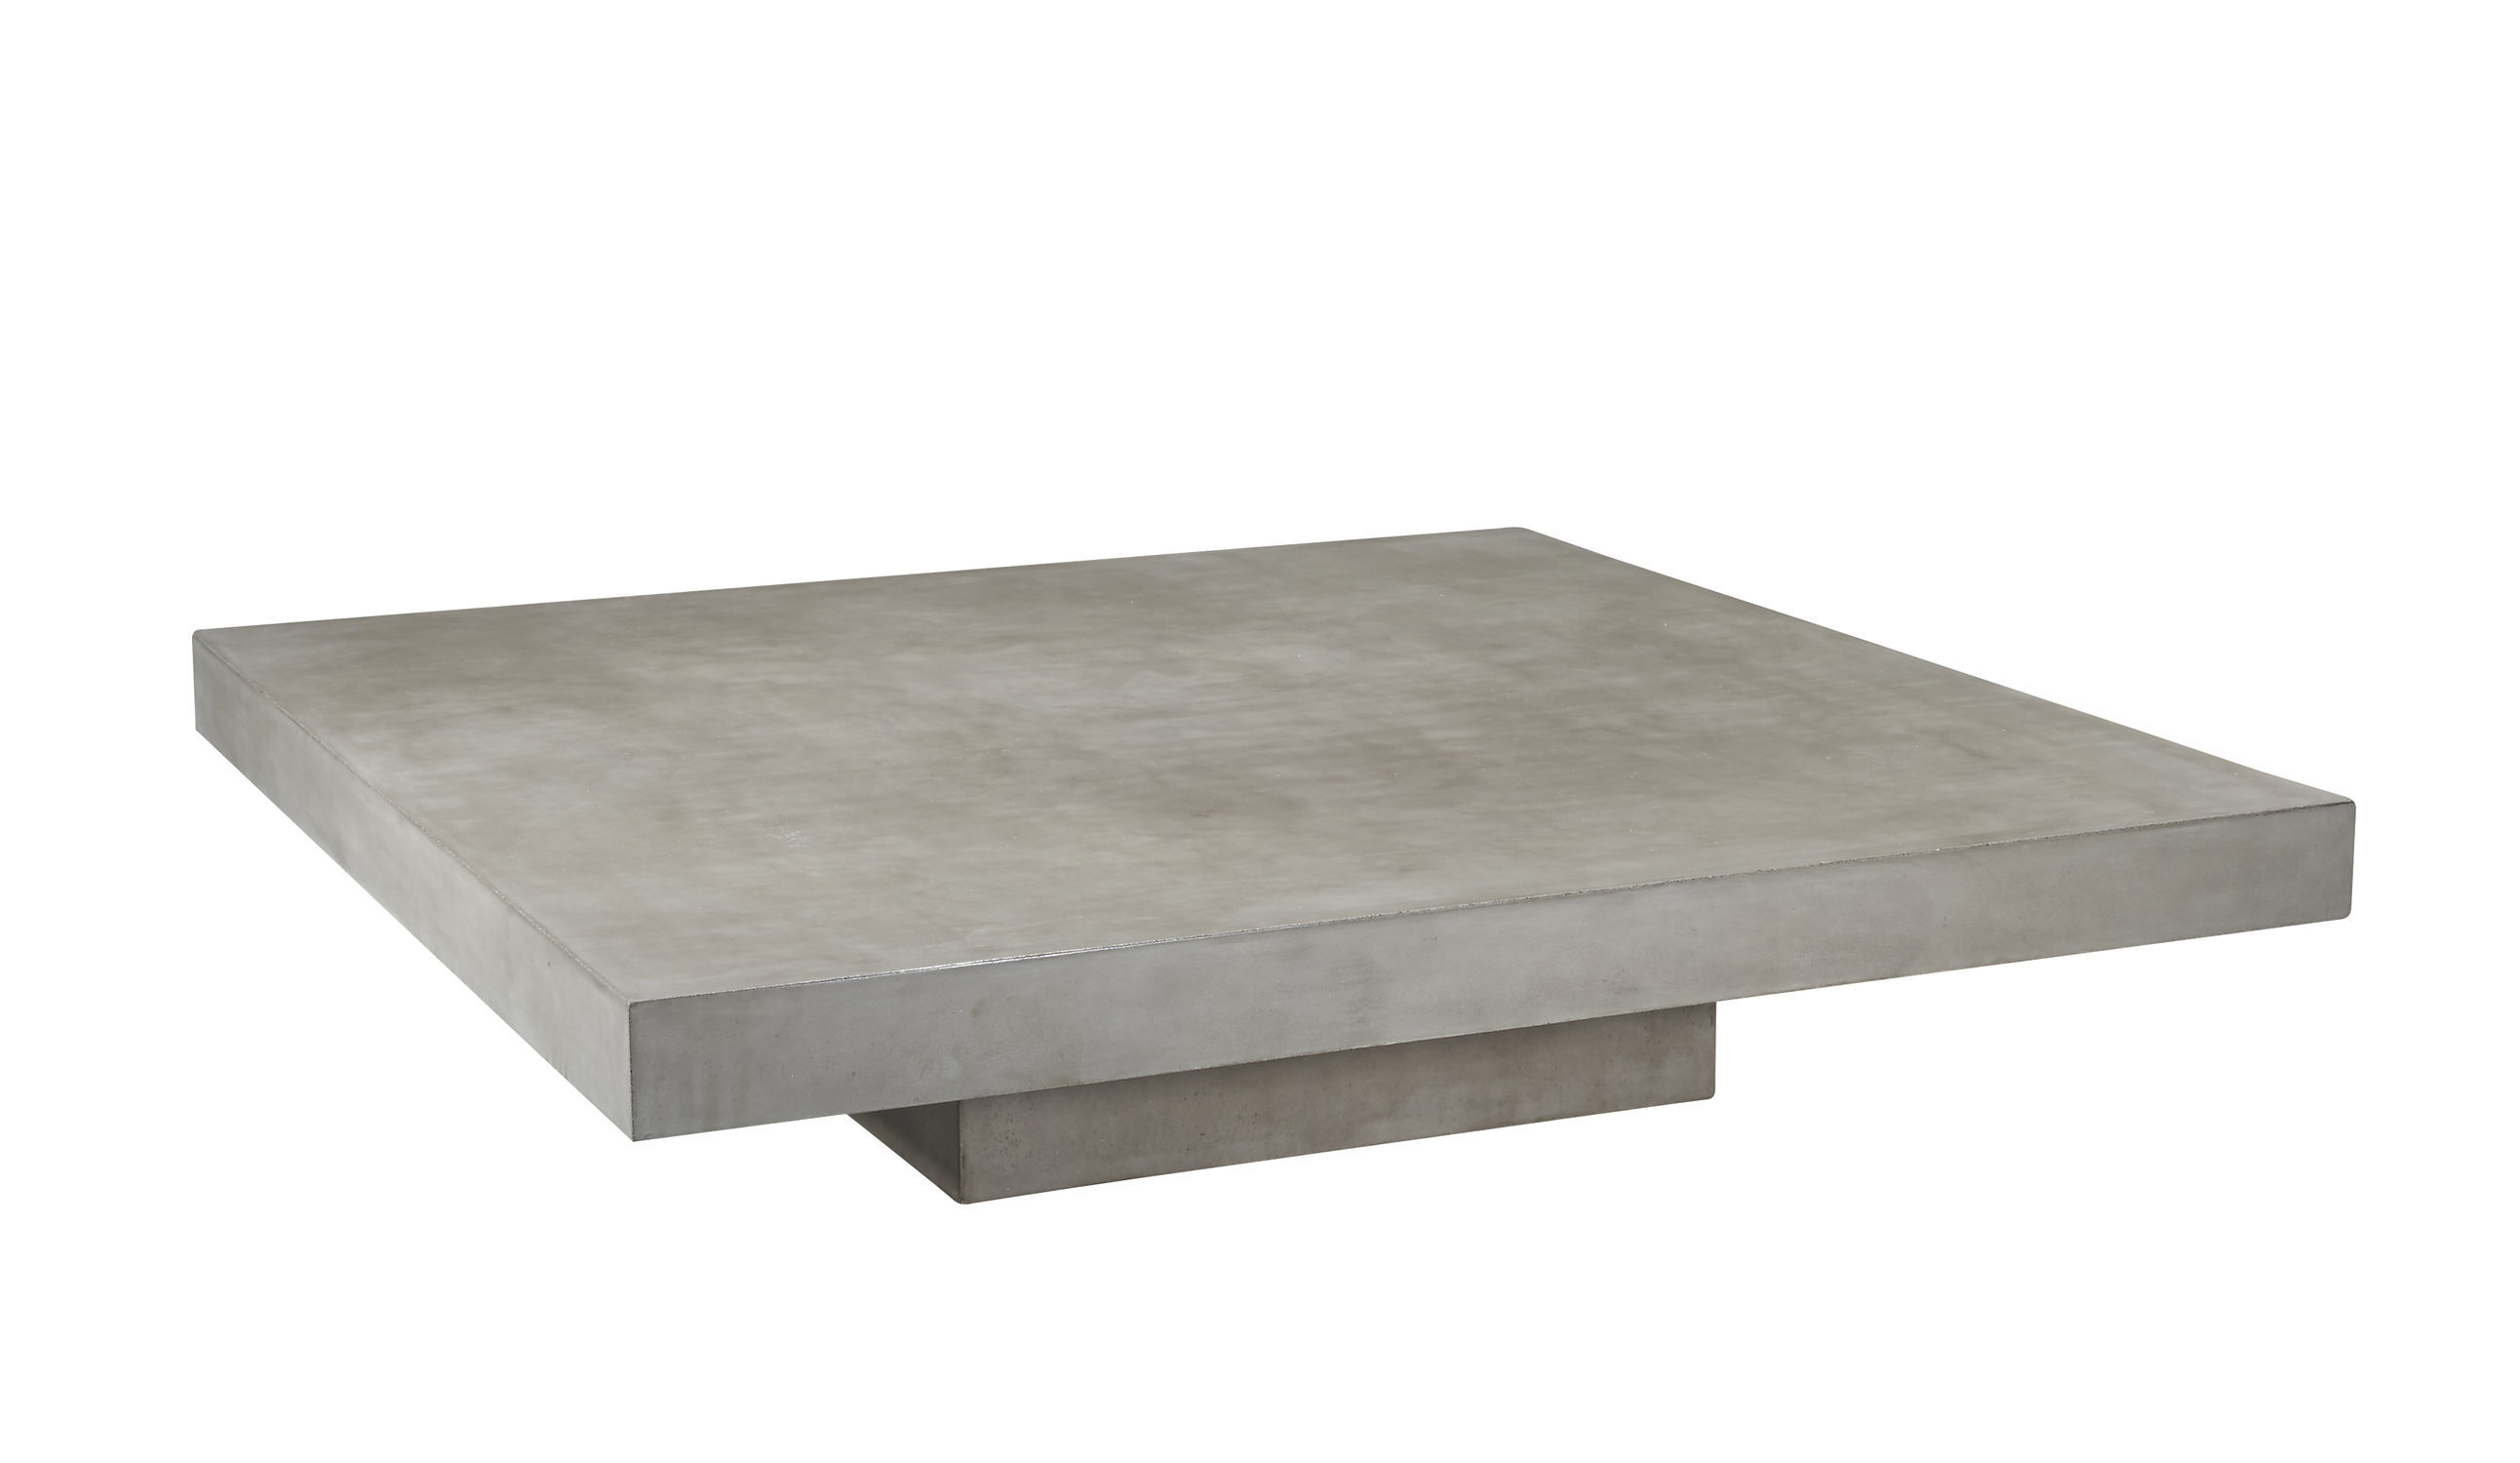 Contemporary Coffee Table Concrete Square Outdoor Ray